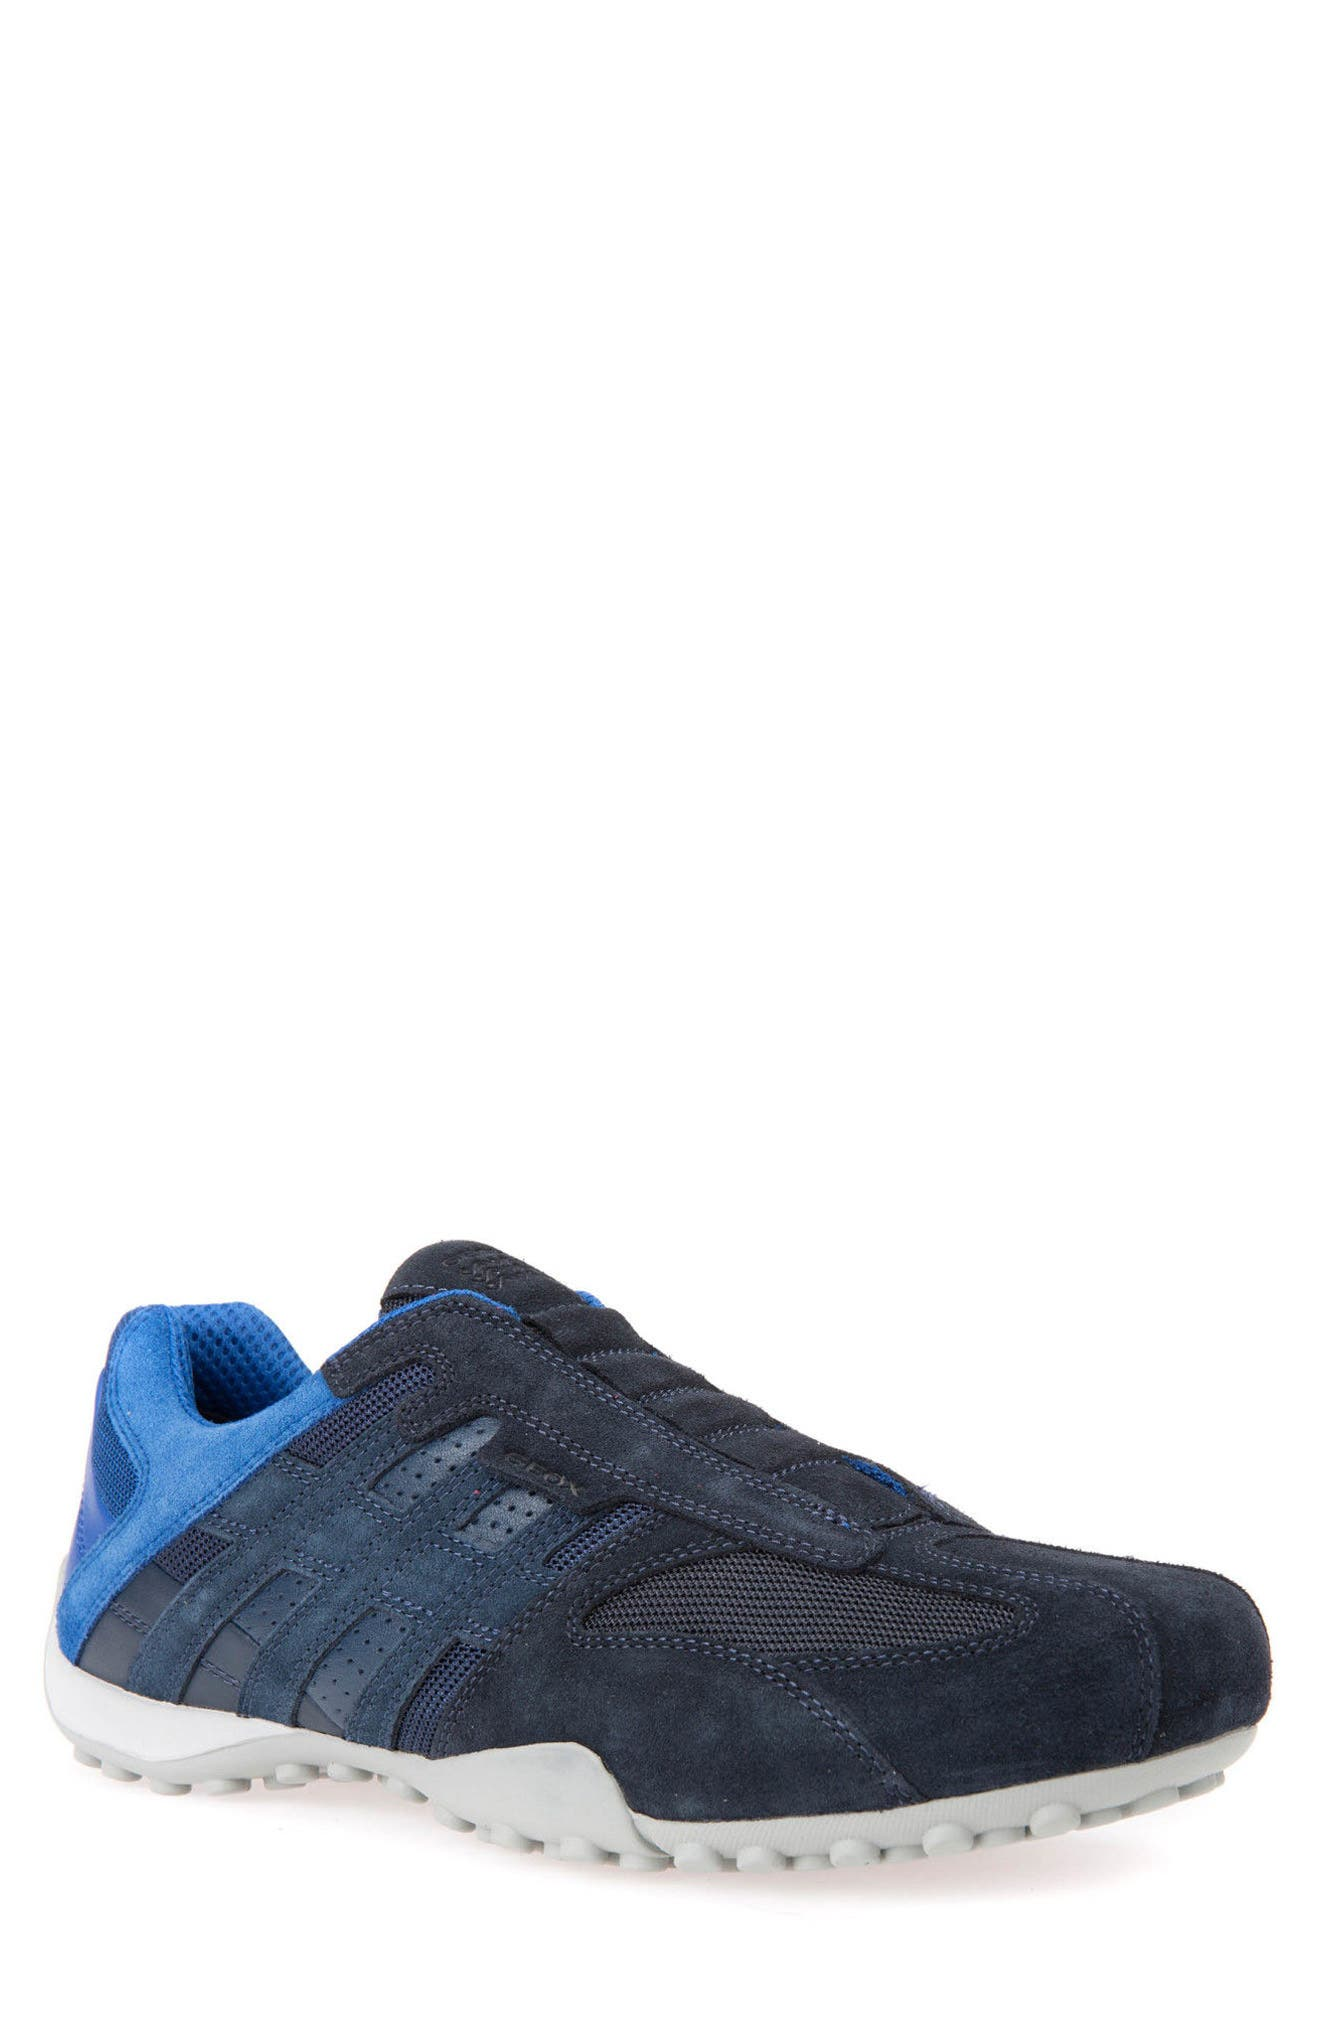 Snake 126 Laceless Low Top Sneaker,                             Main thumbnail 1, color,                             Navy